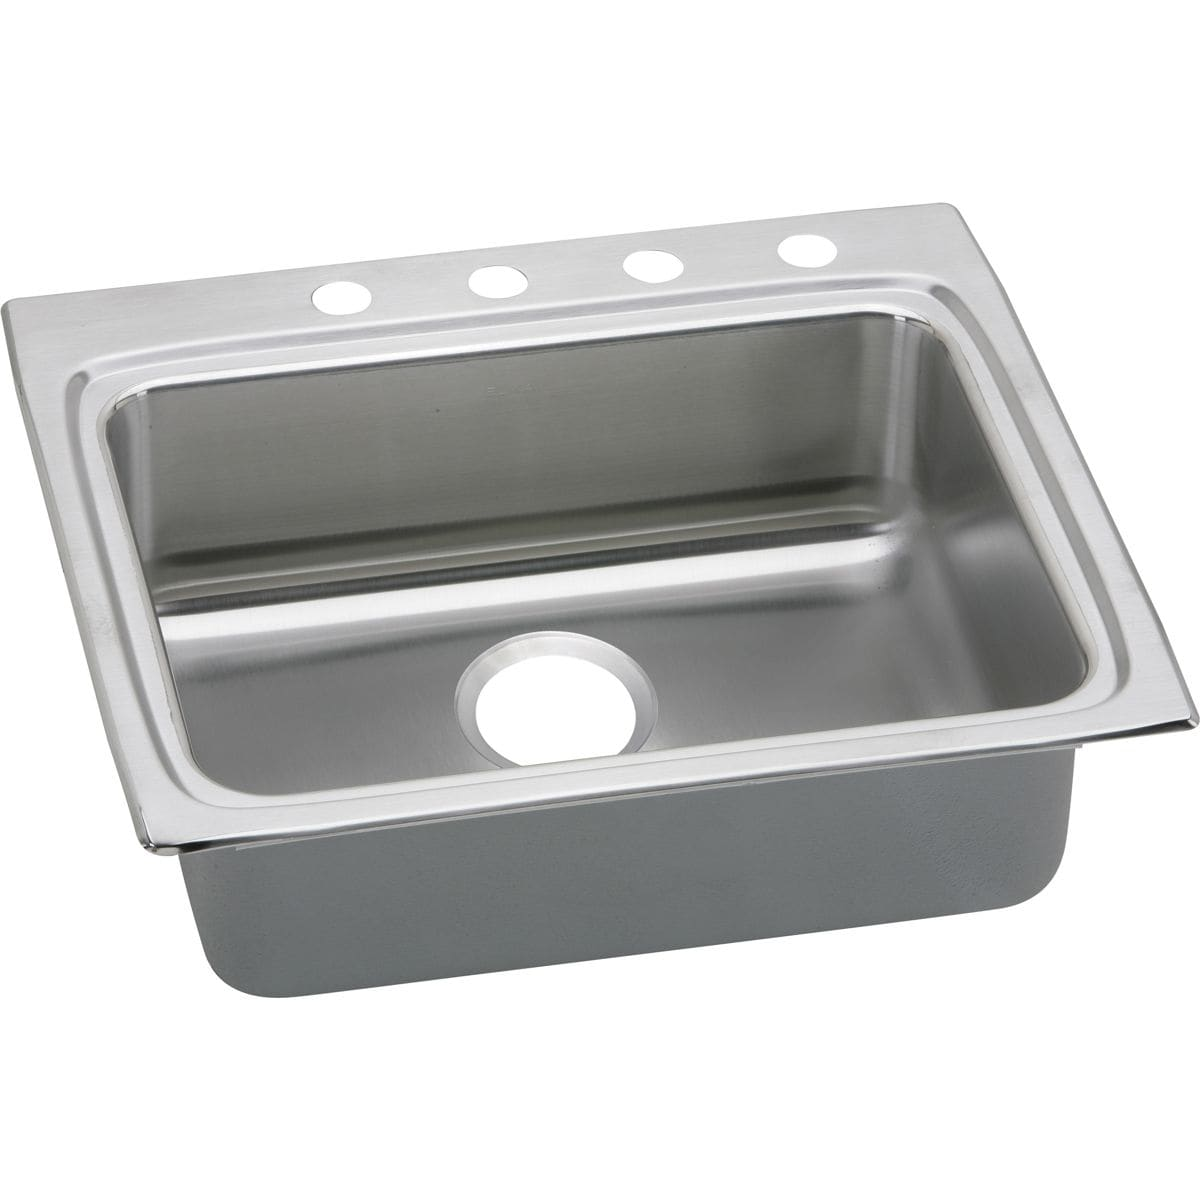 Silver Elkay Metal Faucet Handle with Square Mounting Hole 2-6 Length